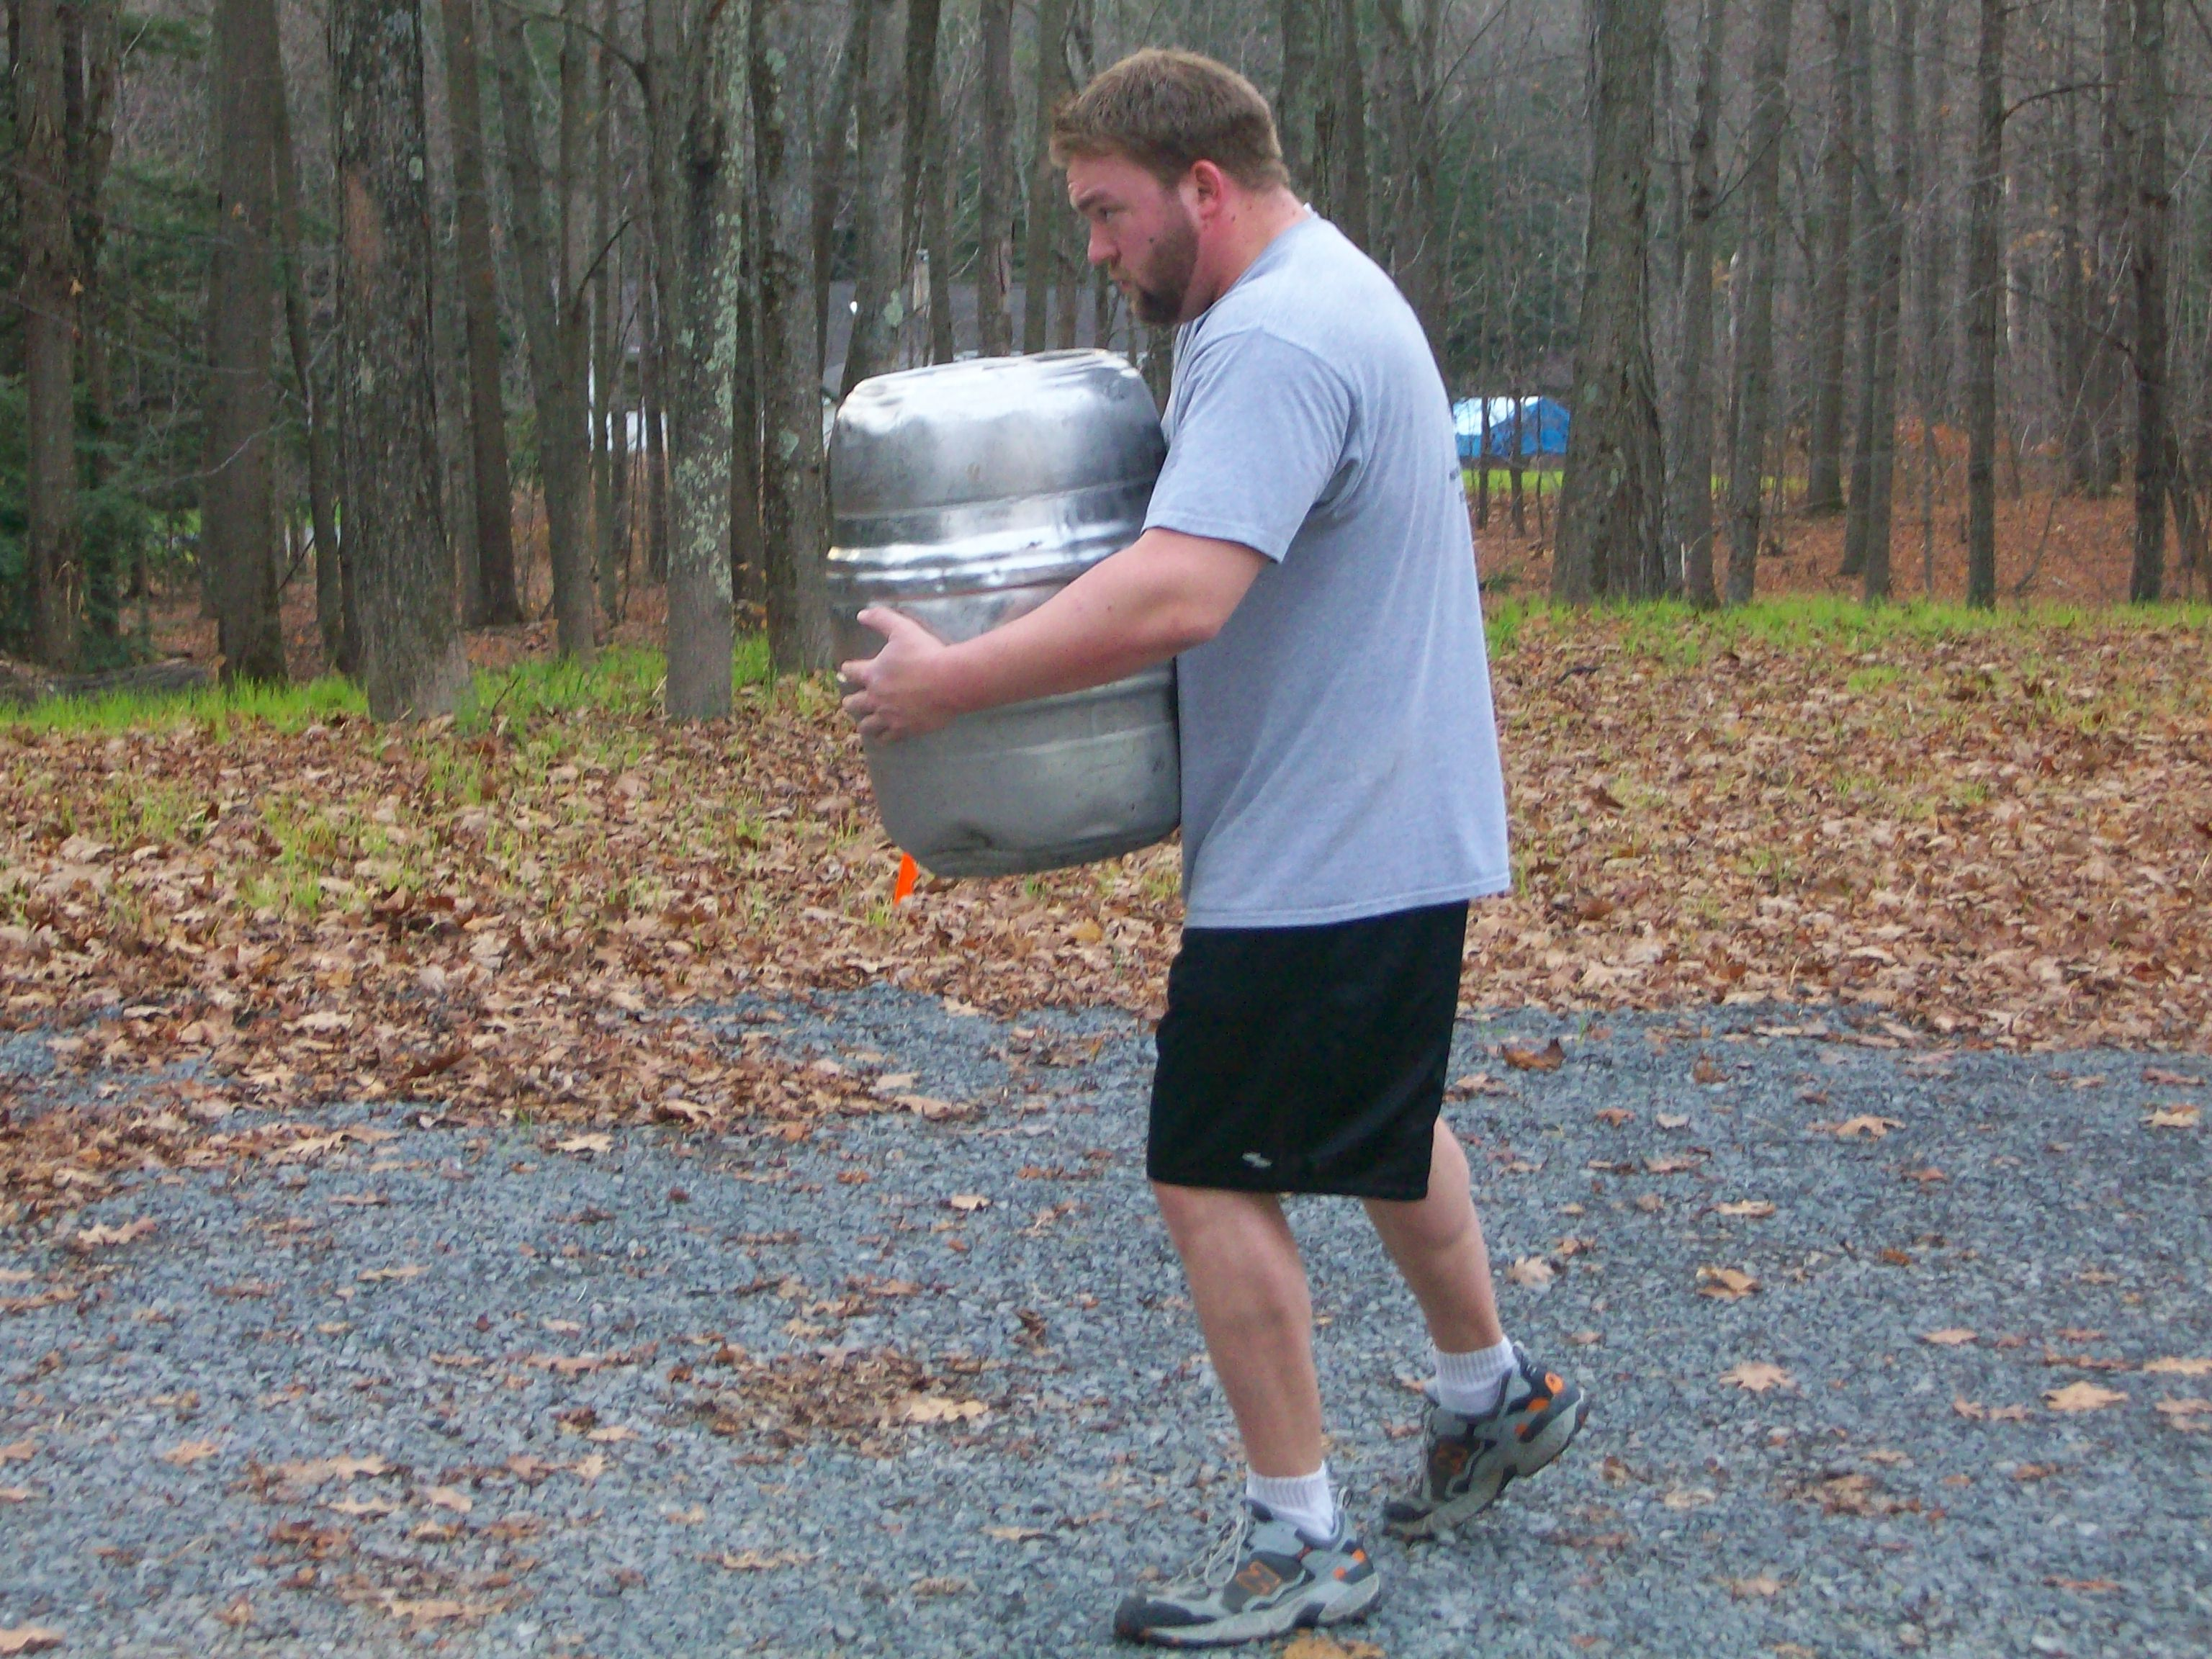 Man carrying keg and walking in woods.